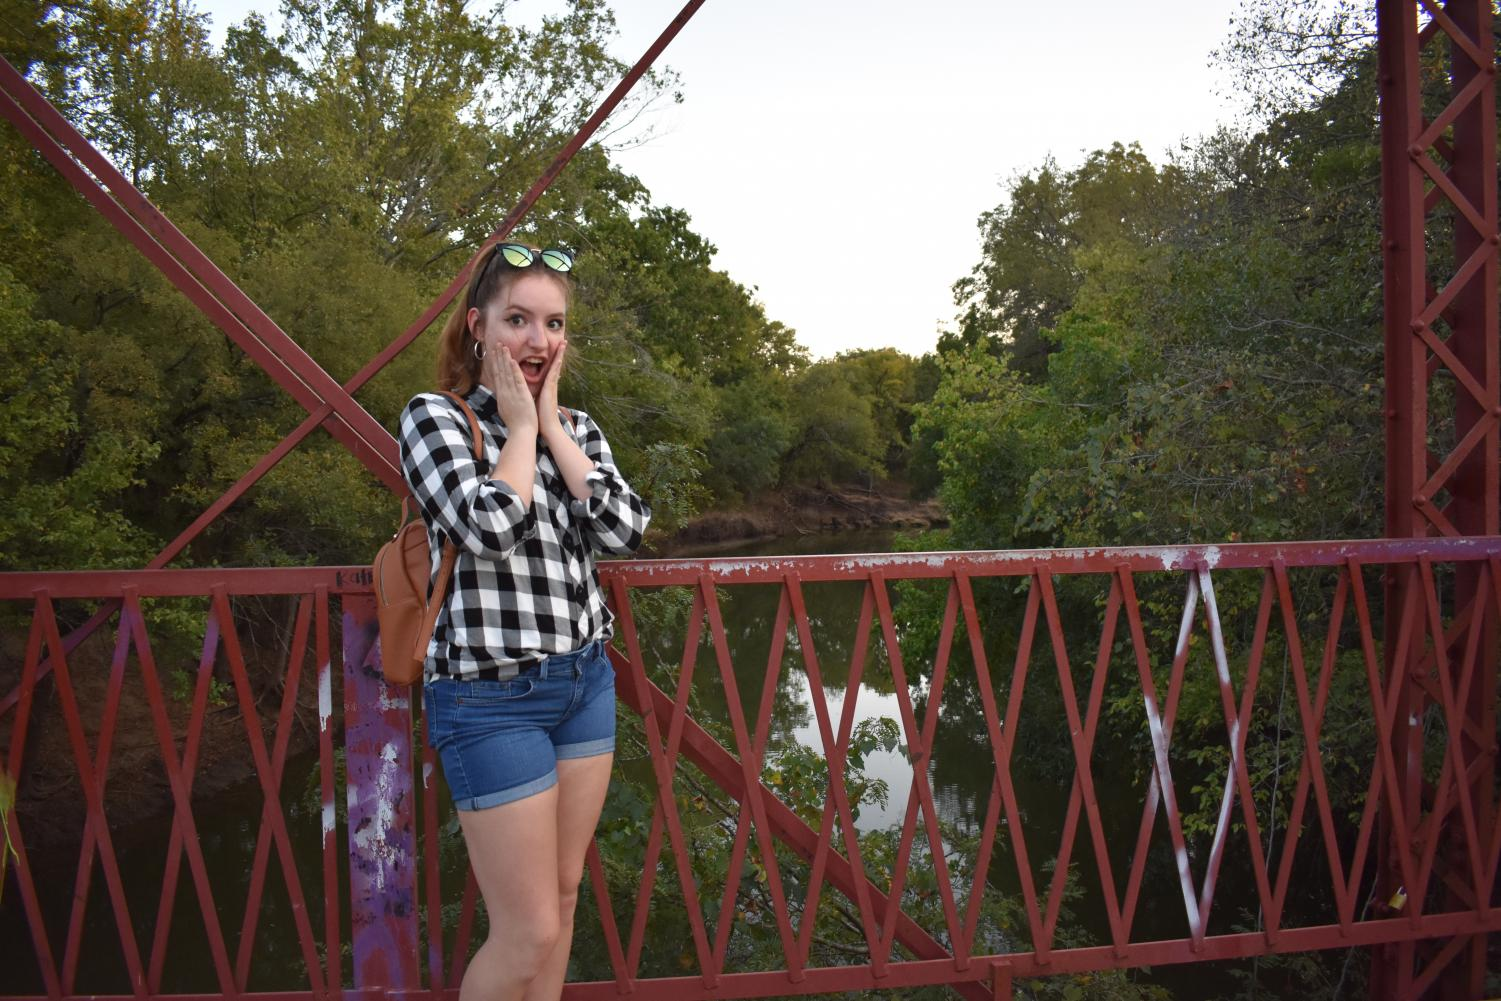 Beyond a bridge \\ Though I did not see anything supernatural at the Goatman's bridge in Denton, Texas, tales of the site tell a different story.